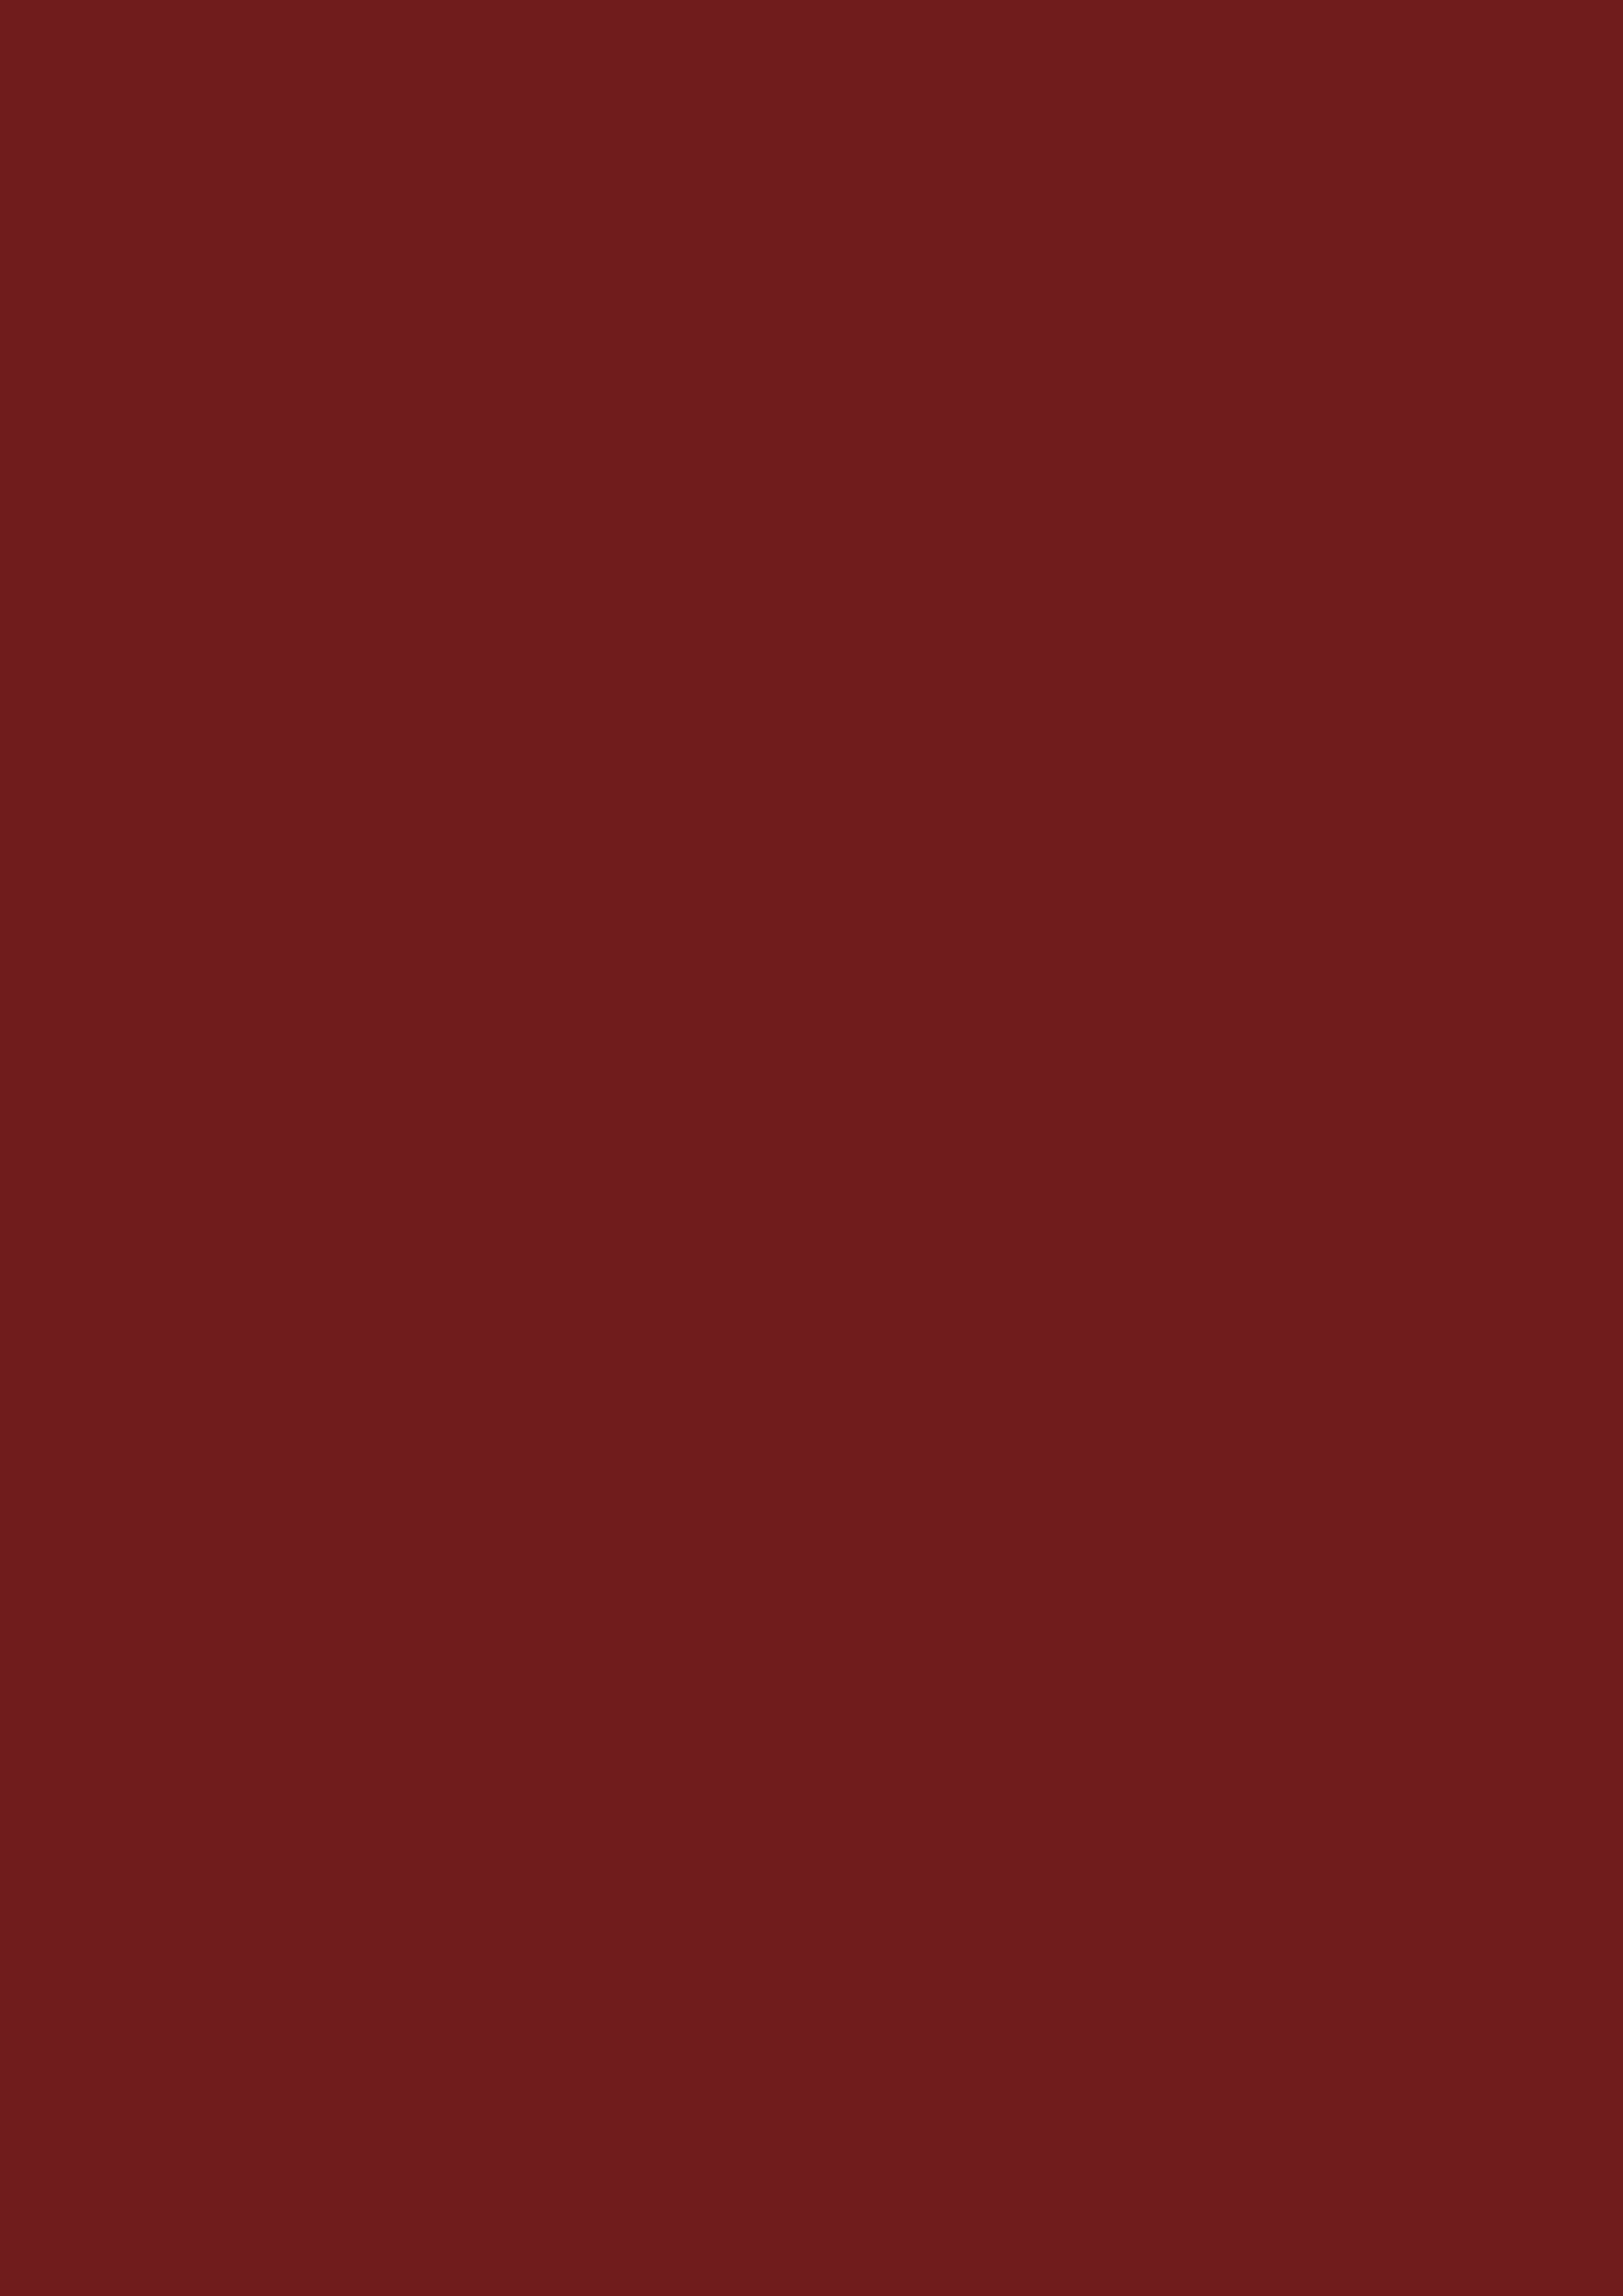 2480x3508 Prune Solid Color Background